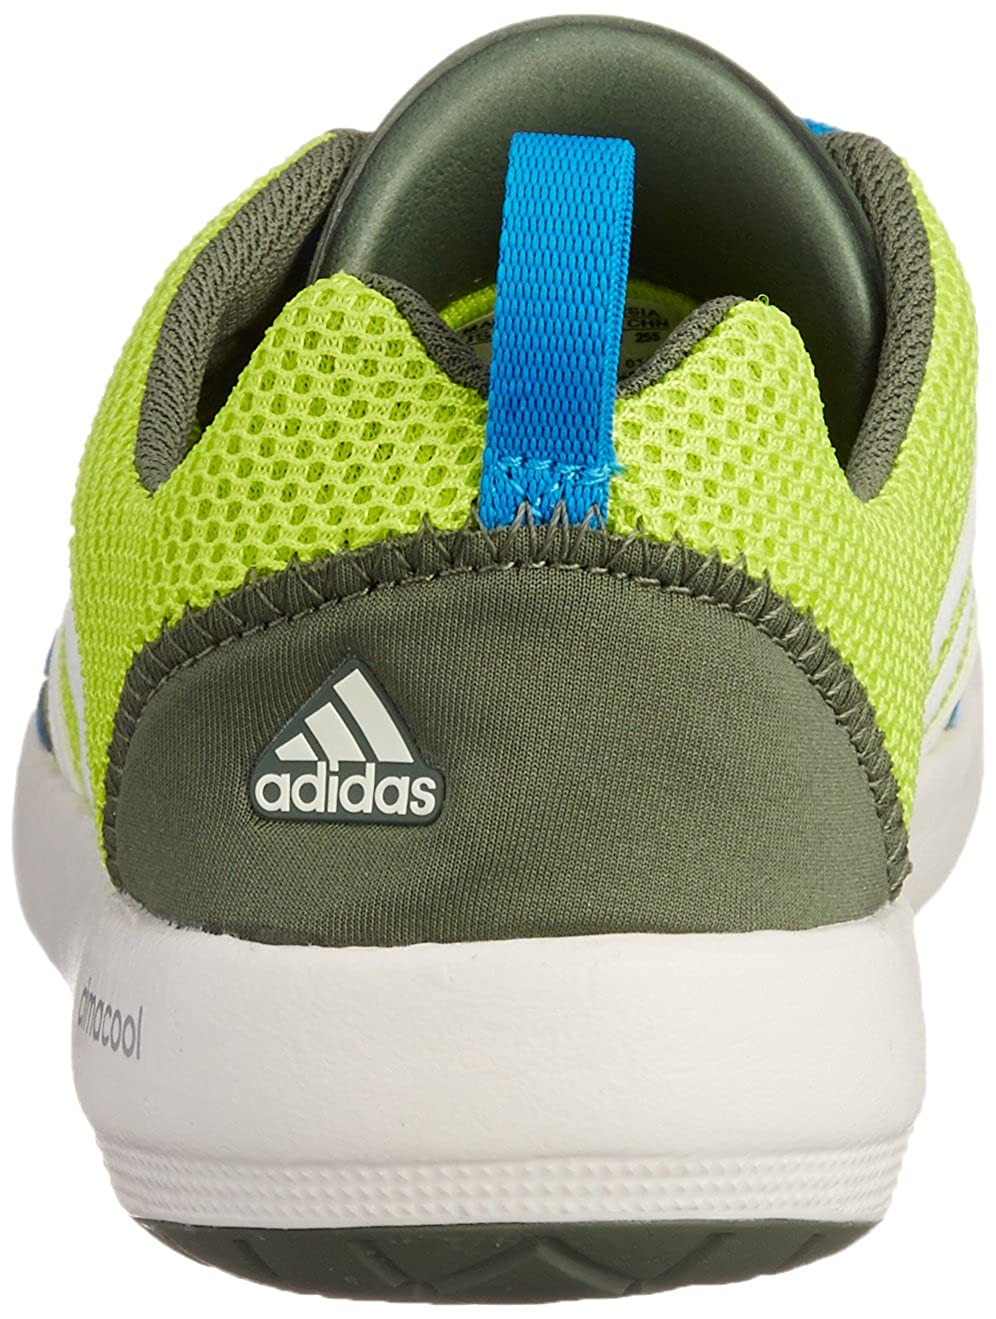 good looking low price buy Adidas Climacool Boat Lace, Unisex Adults' Boating Shoes, Yellow ...